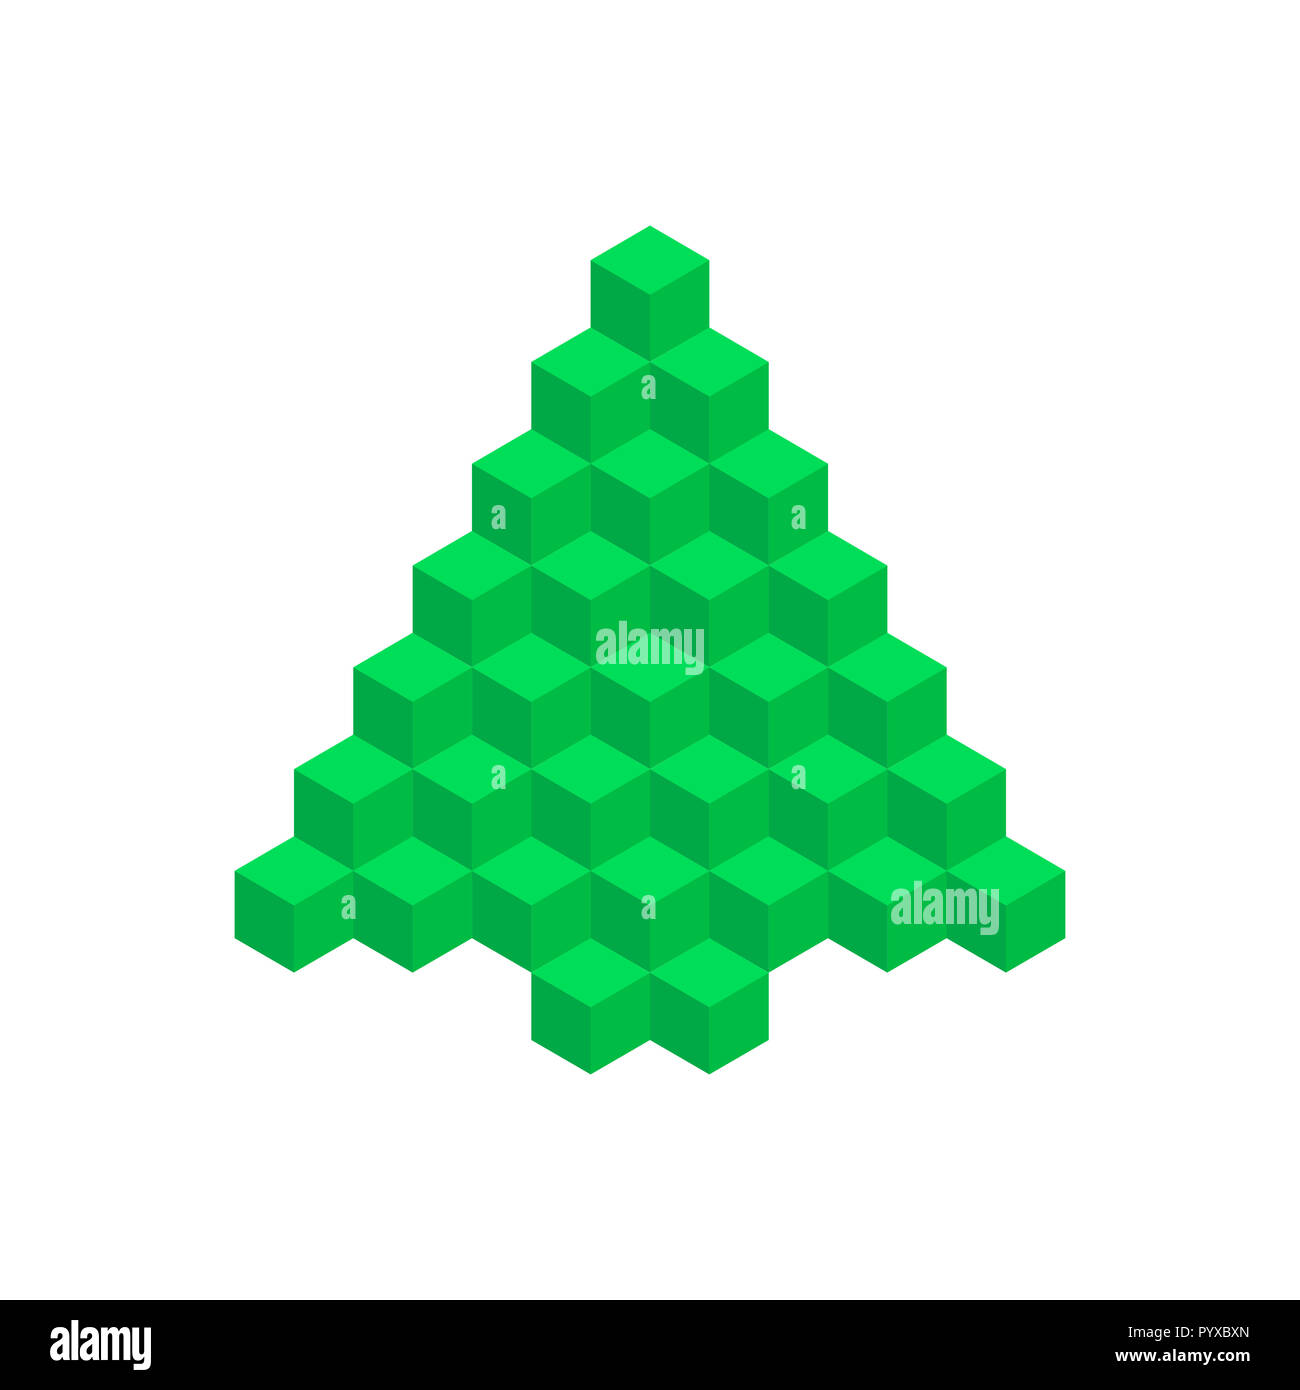 Geometric Christmas Tree. Merry Christmas and Happy New Year Design Element. Resource for Creating Postcards, Calendars or Posters, Presentations or B - Stock Image